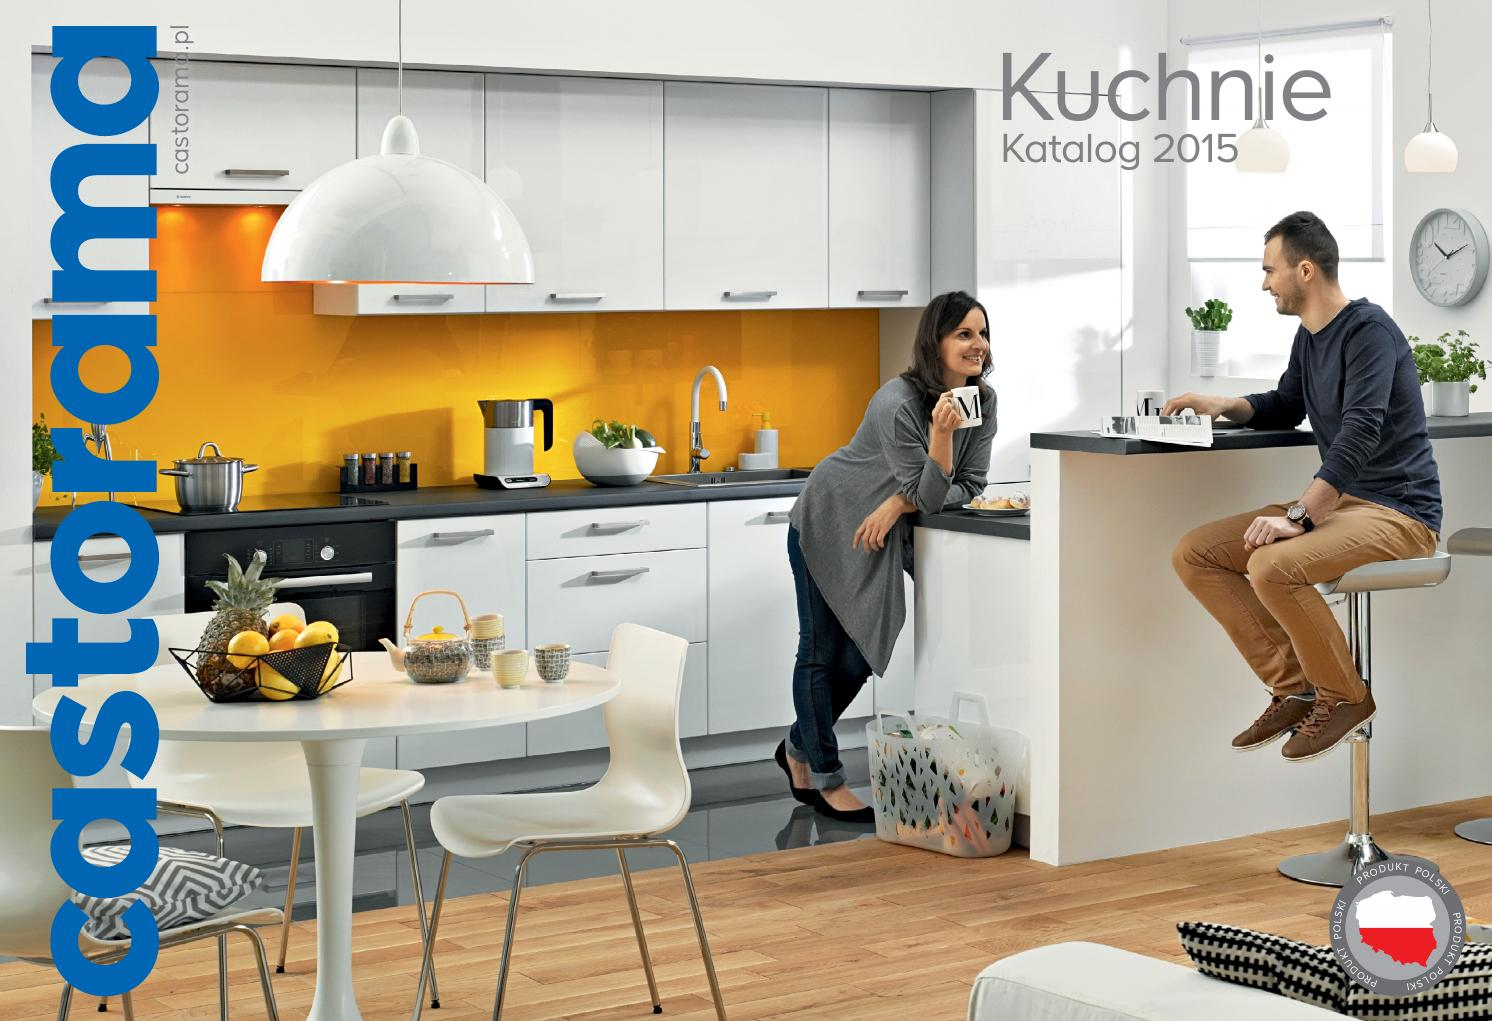 castorama katalog kuchnie 2015 by finmarket issuu. Black Bedroom Furniture Sets. Home Design Ideas